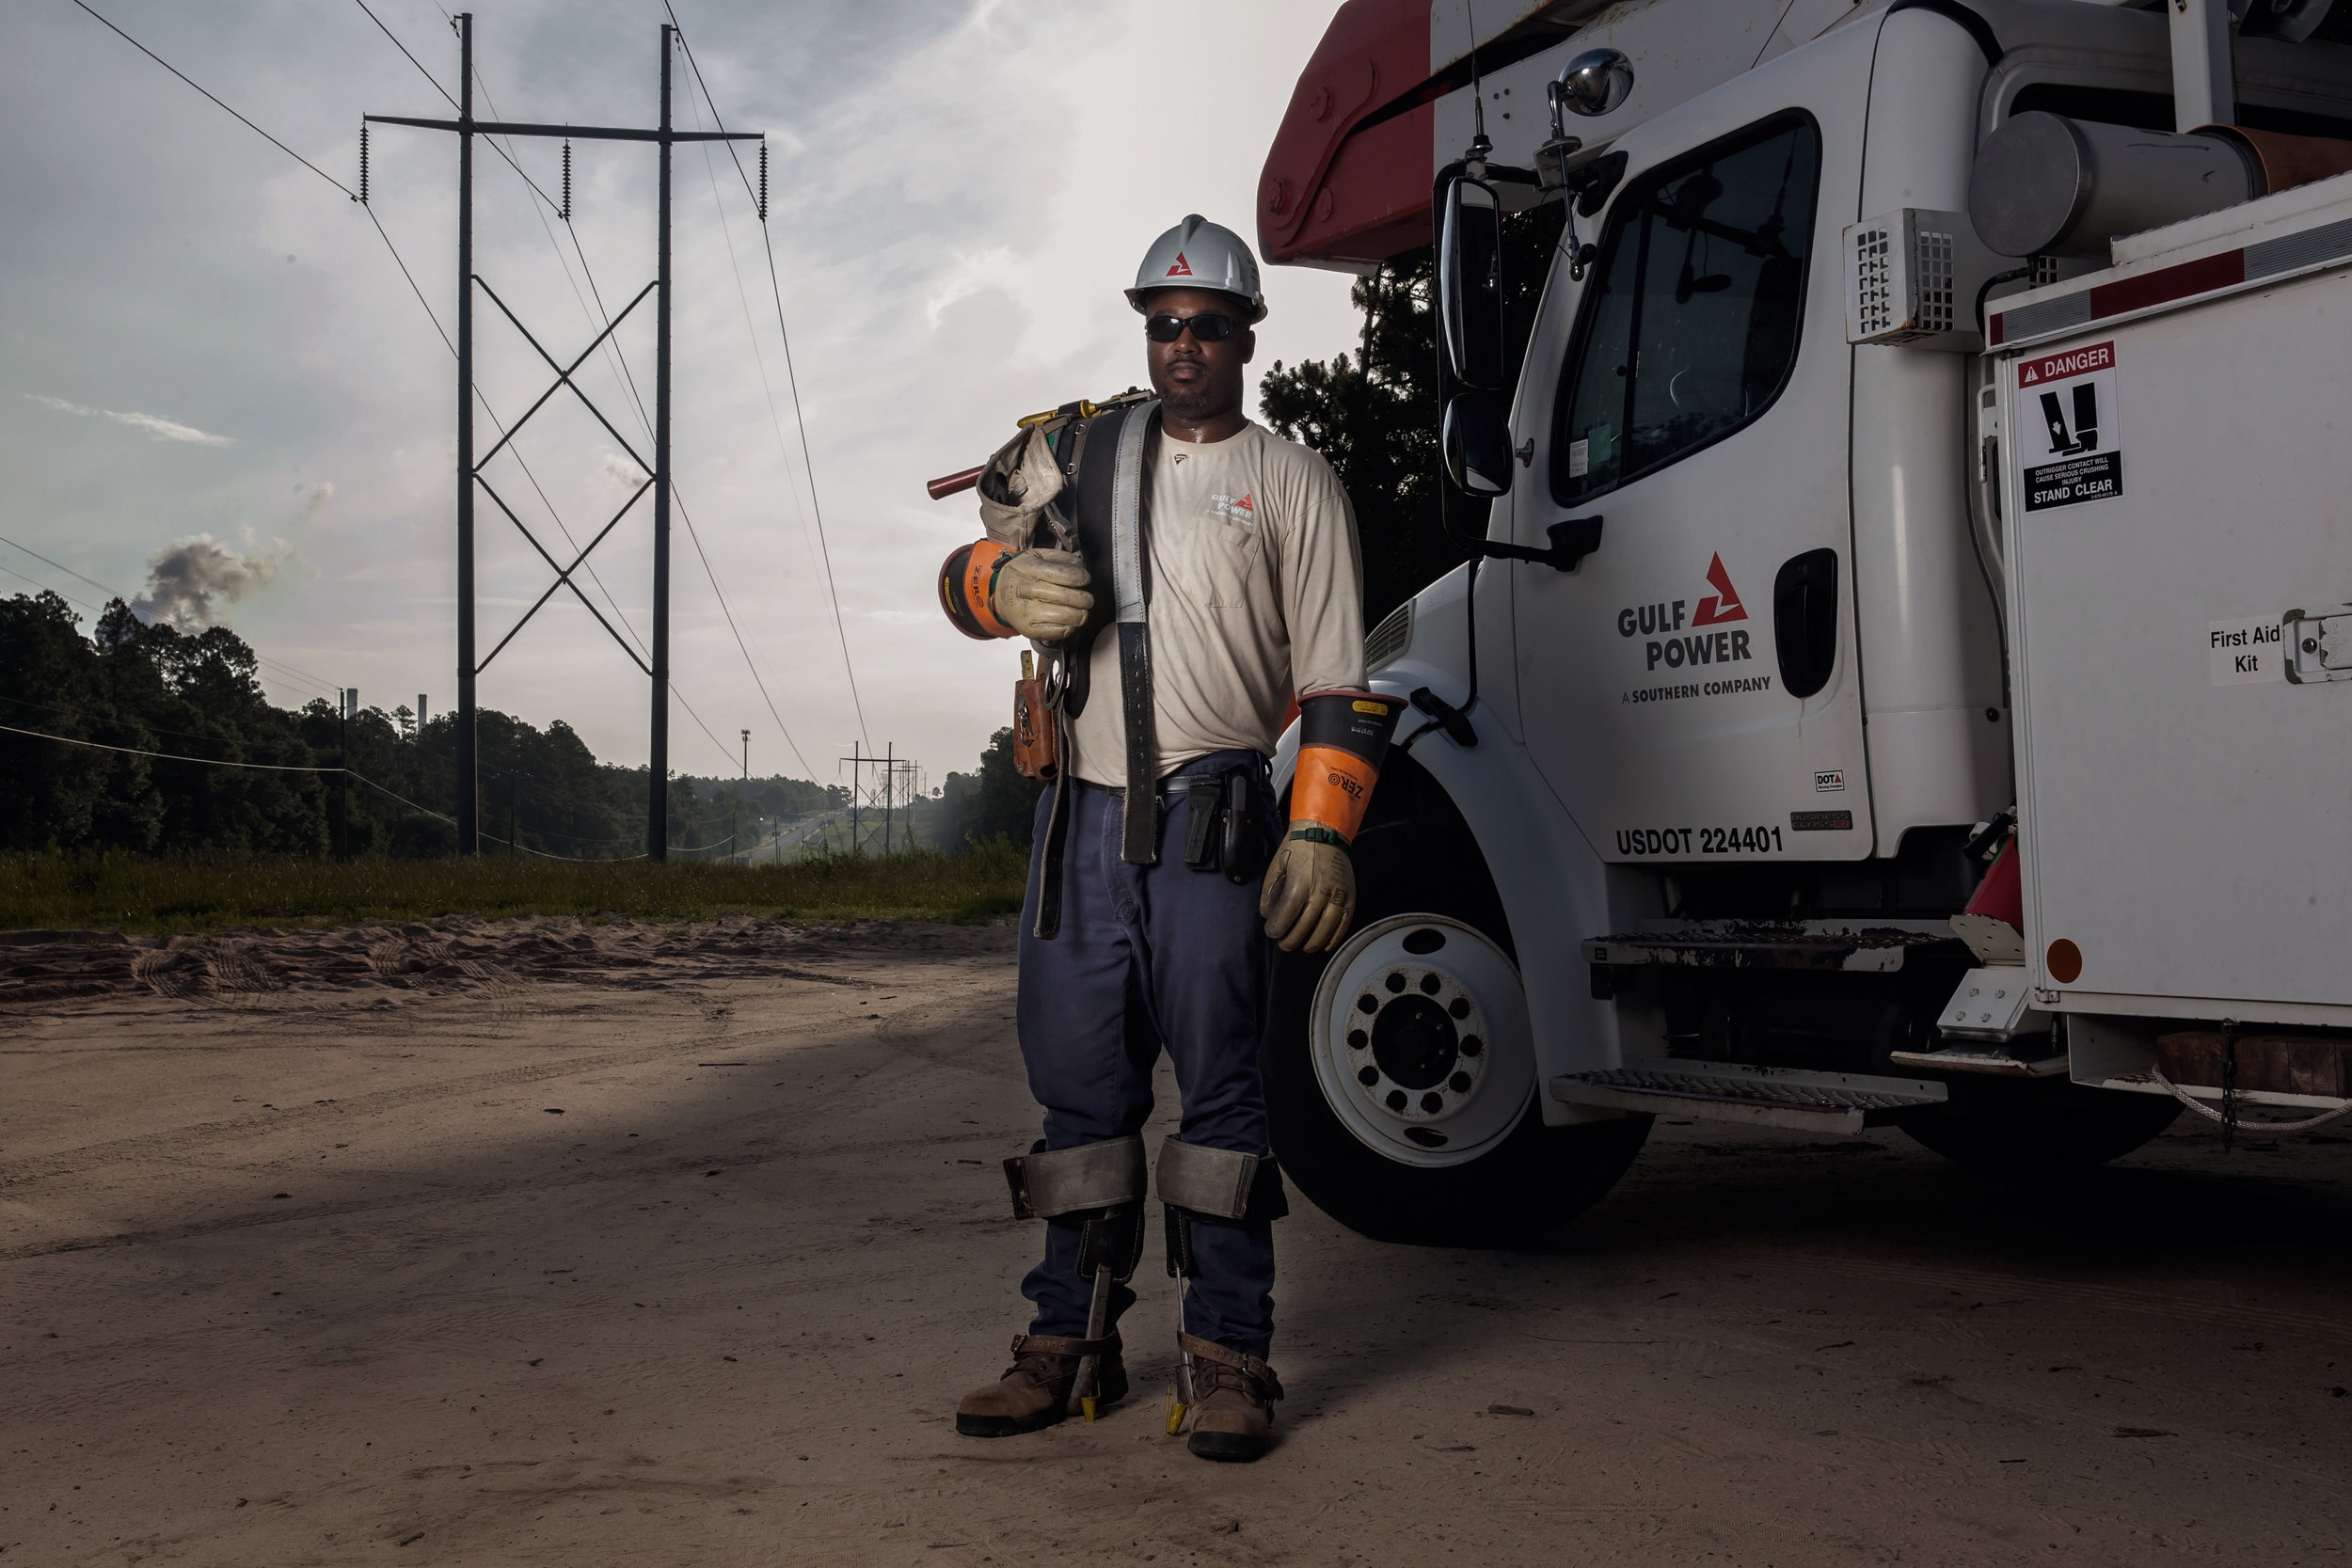 Gulf Power Lineman Dimitric in Pensacola, Florida